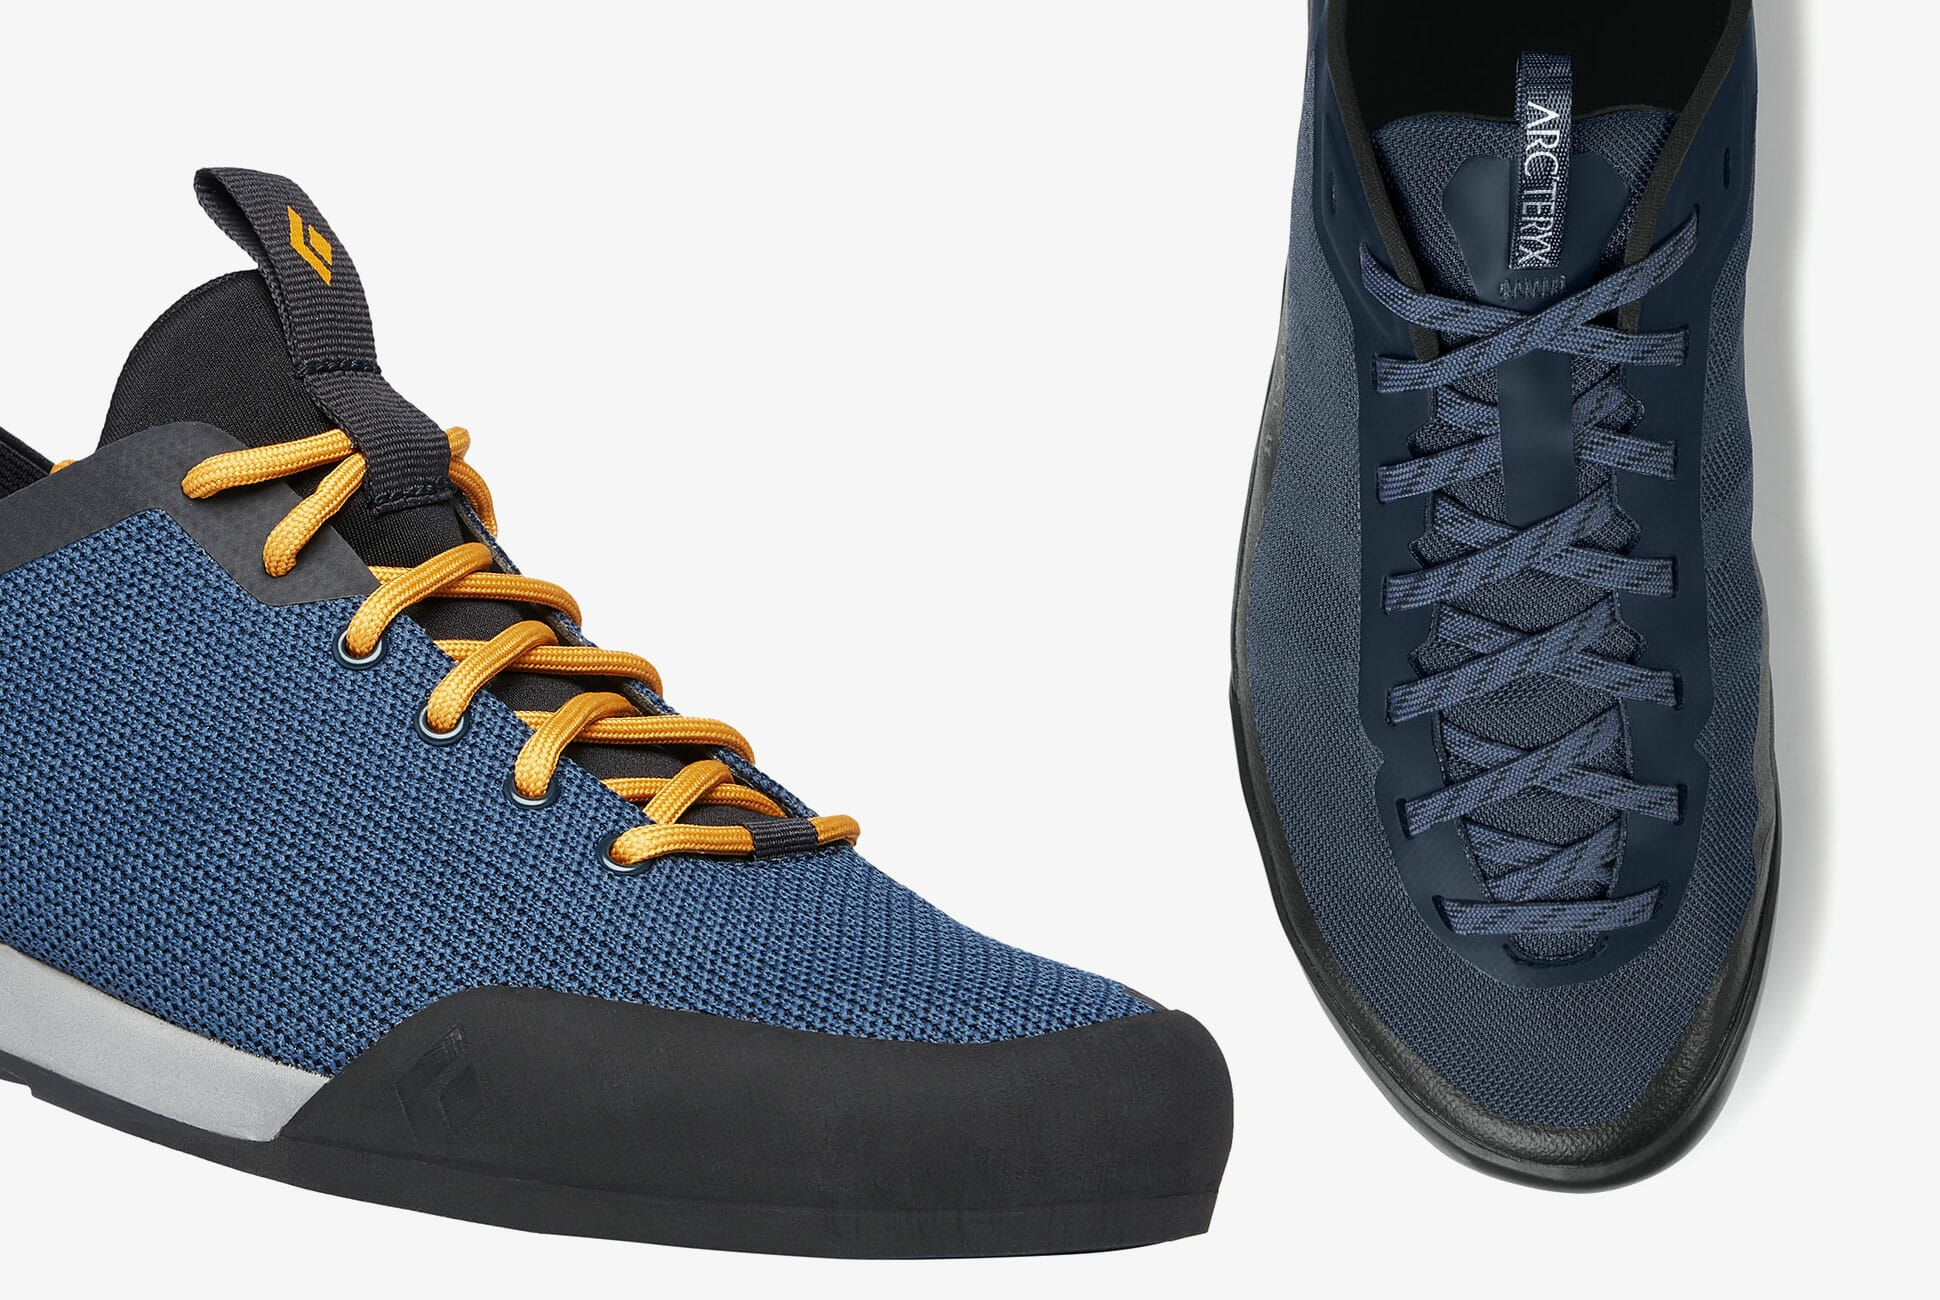 These 9 Technical Shoes Are Secretly